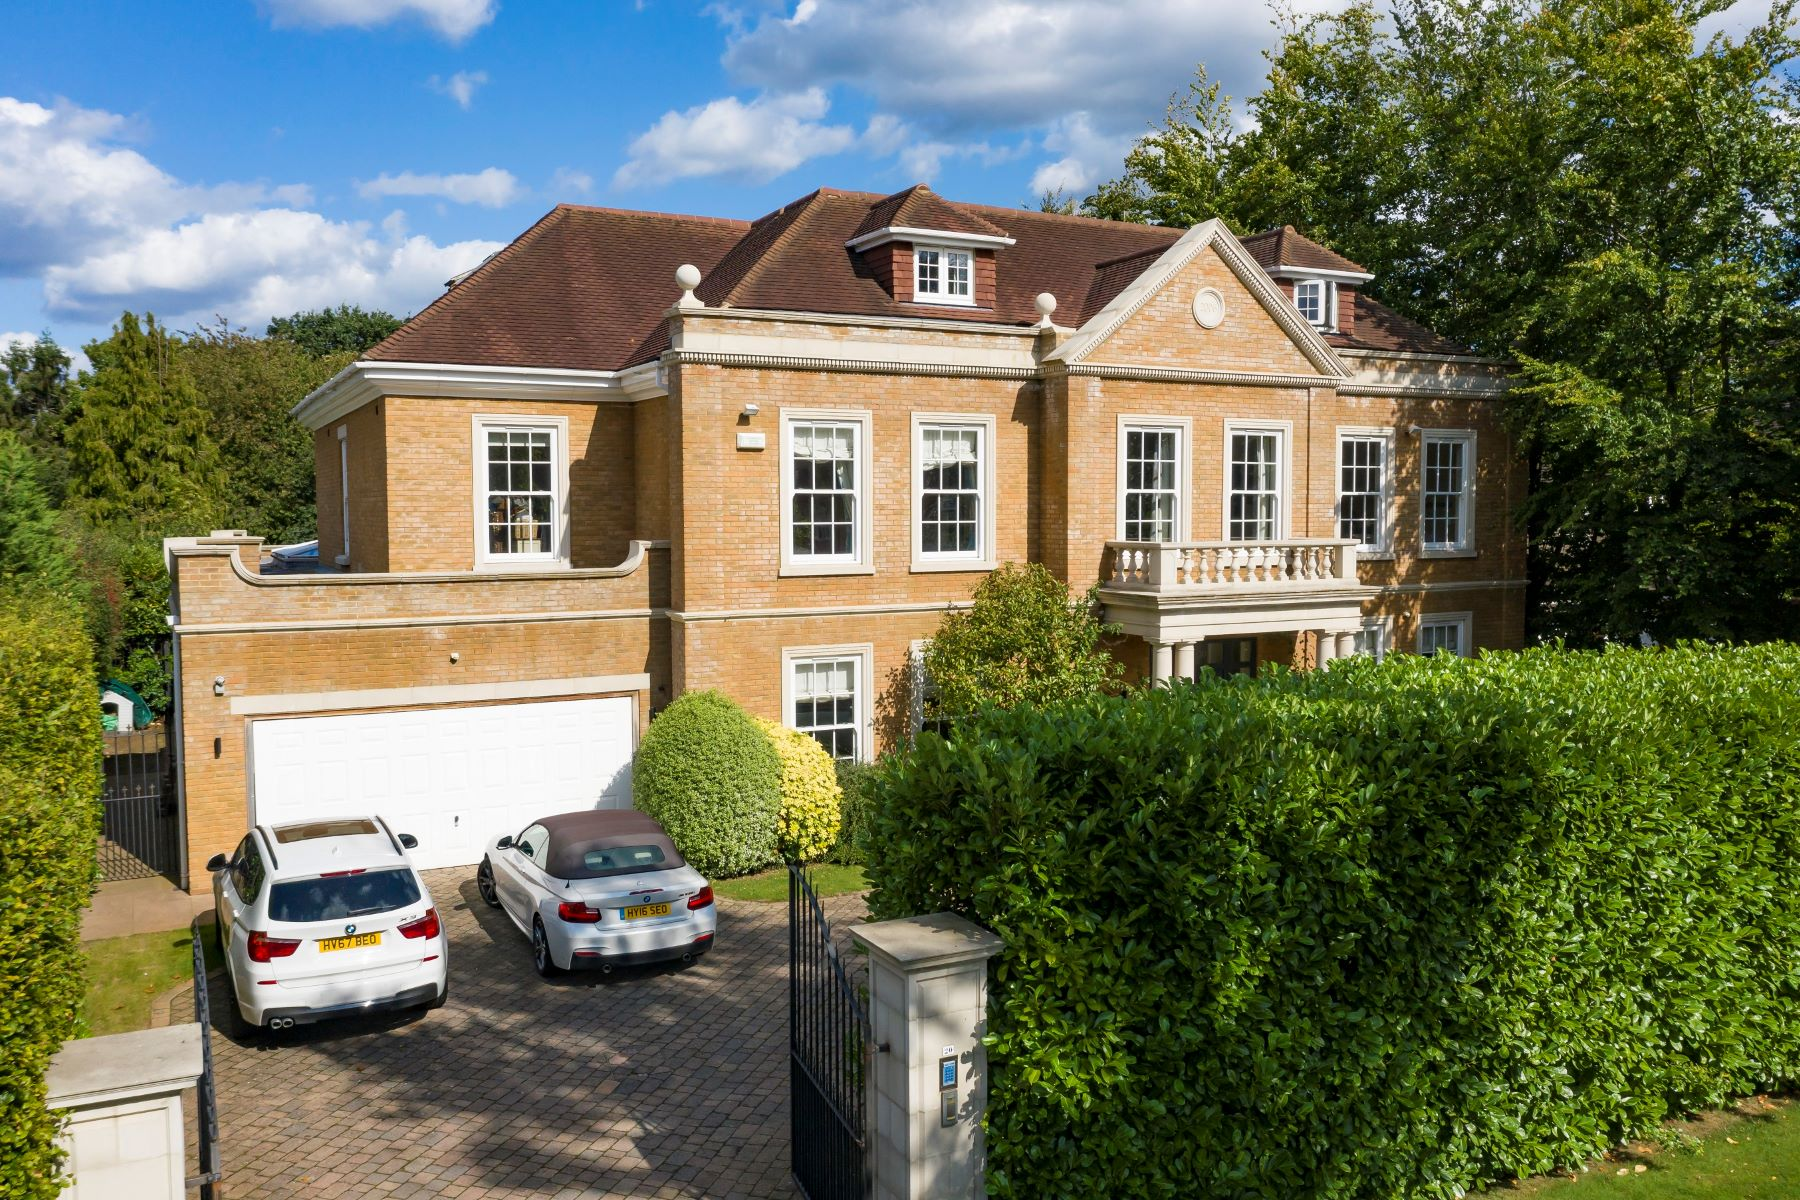 Single Family Homes for Sale at 20 Icklingham Road Other England, England KT11 2NQ United Kingdom